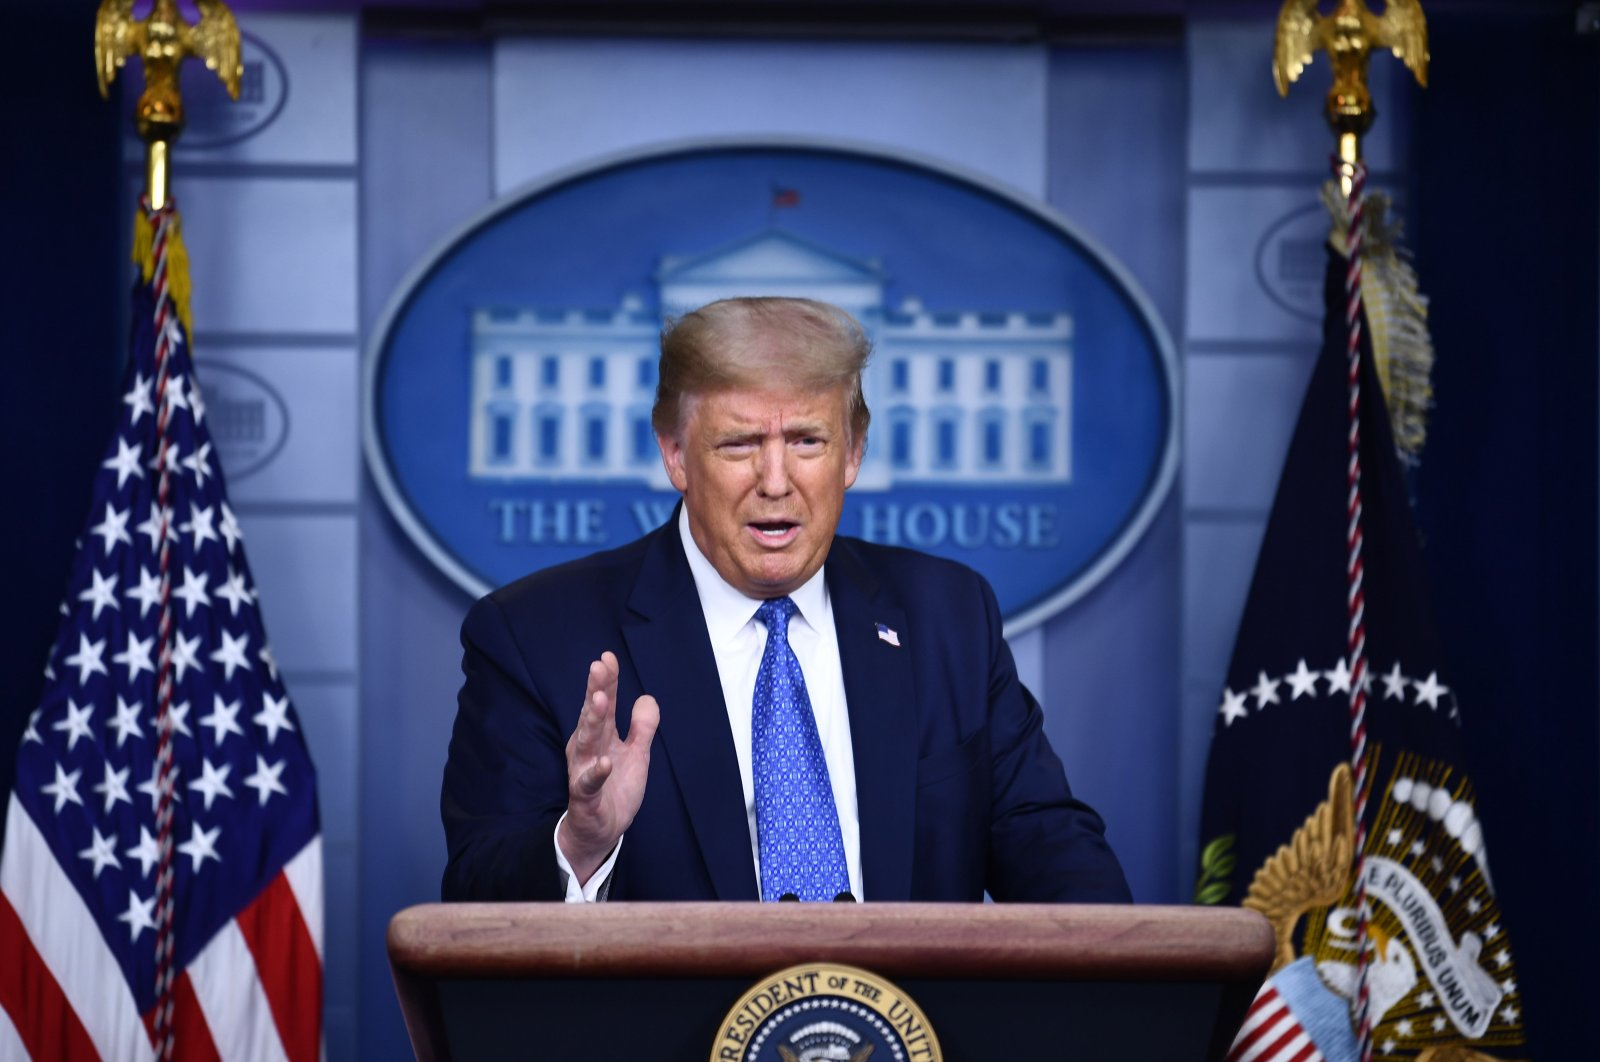 U.S. President Donald Trump speaks to the press during the renewed briefing of the Coronavirus Task Force in the Brady Briefing Room of the White House in Washington, DC, on July 22, 2020. (AFP Photo)